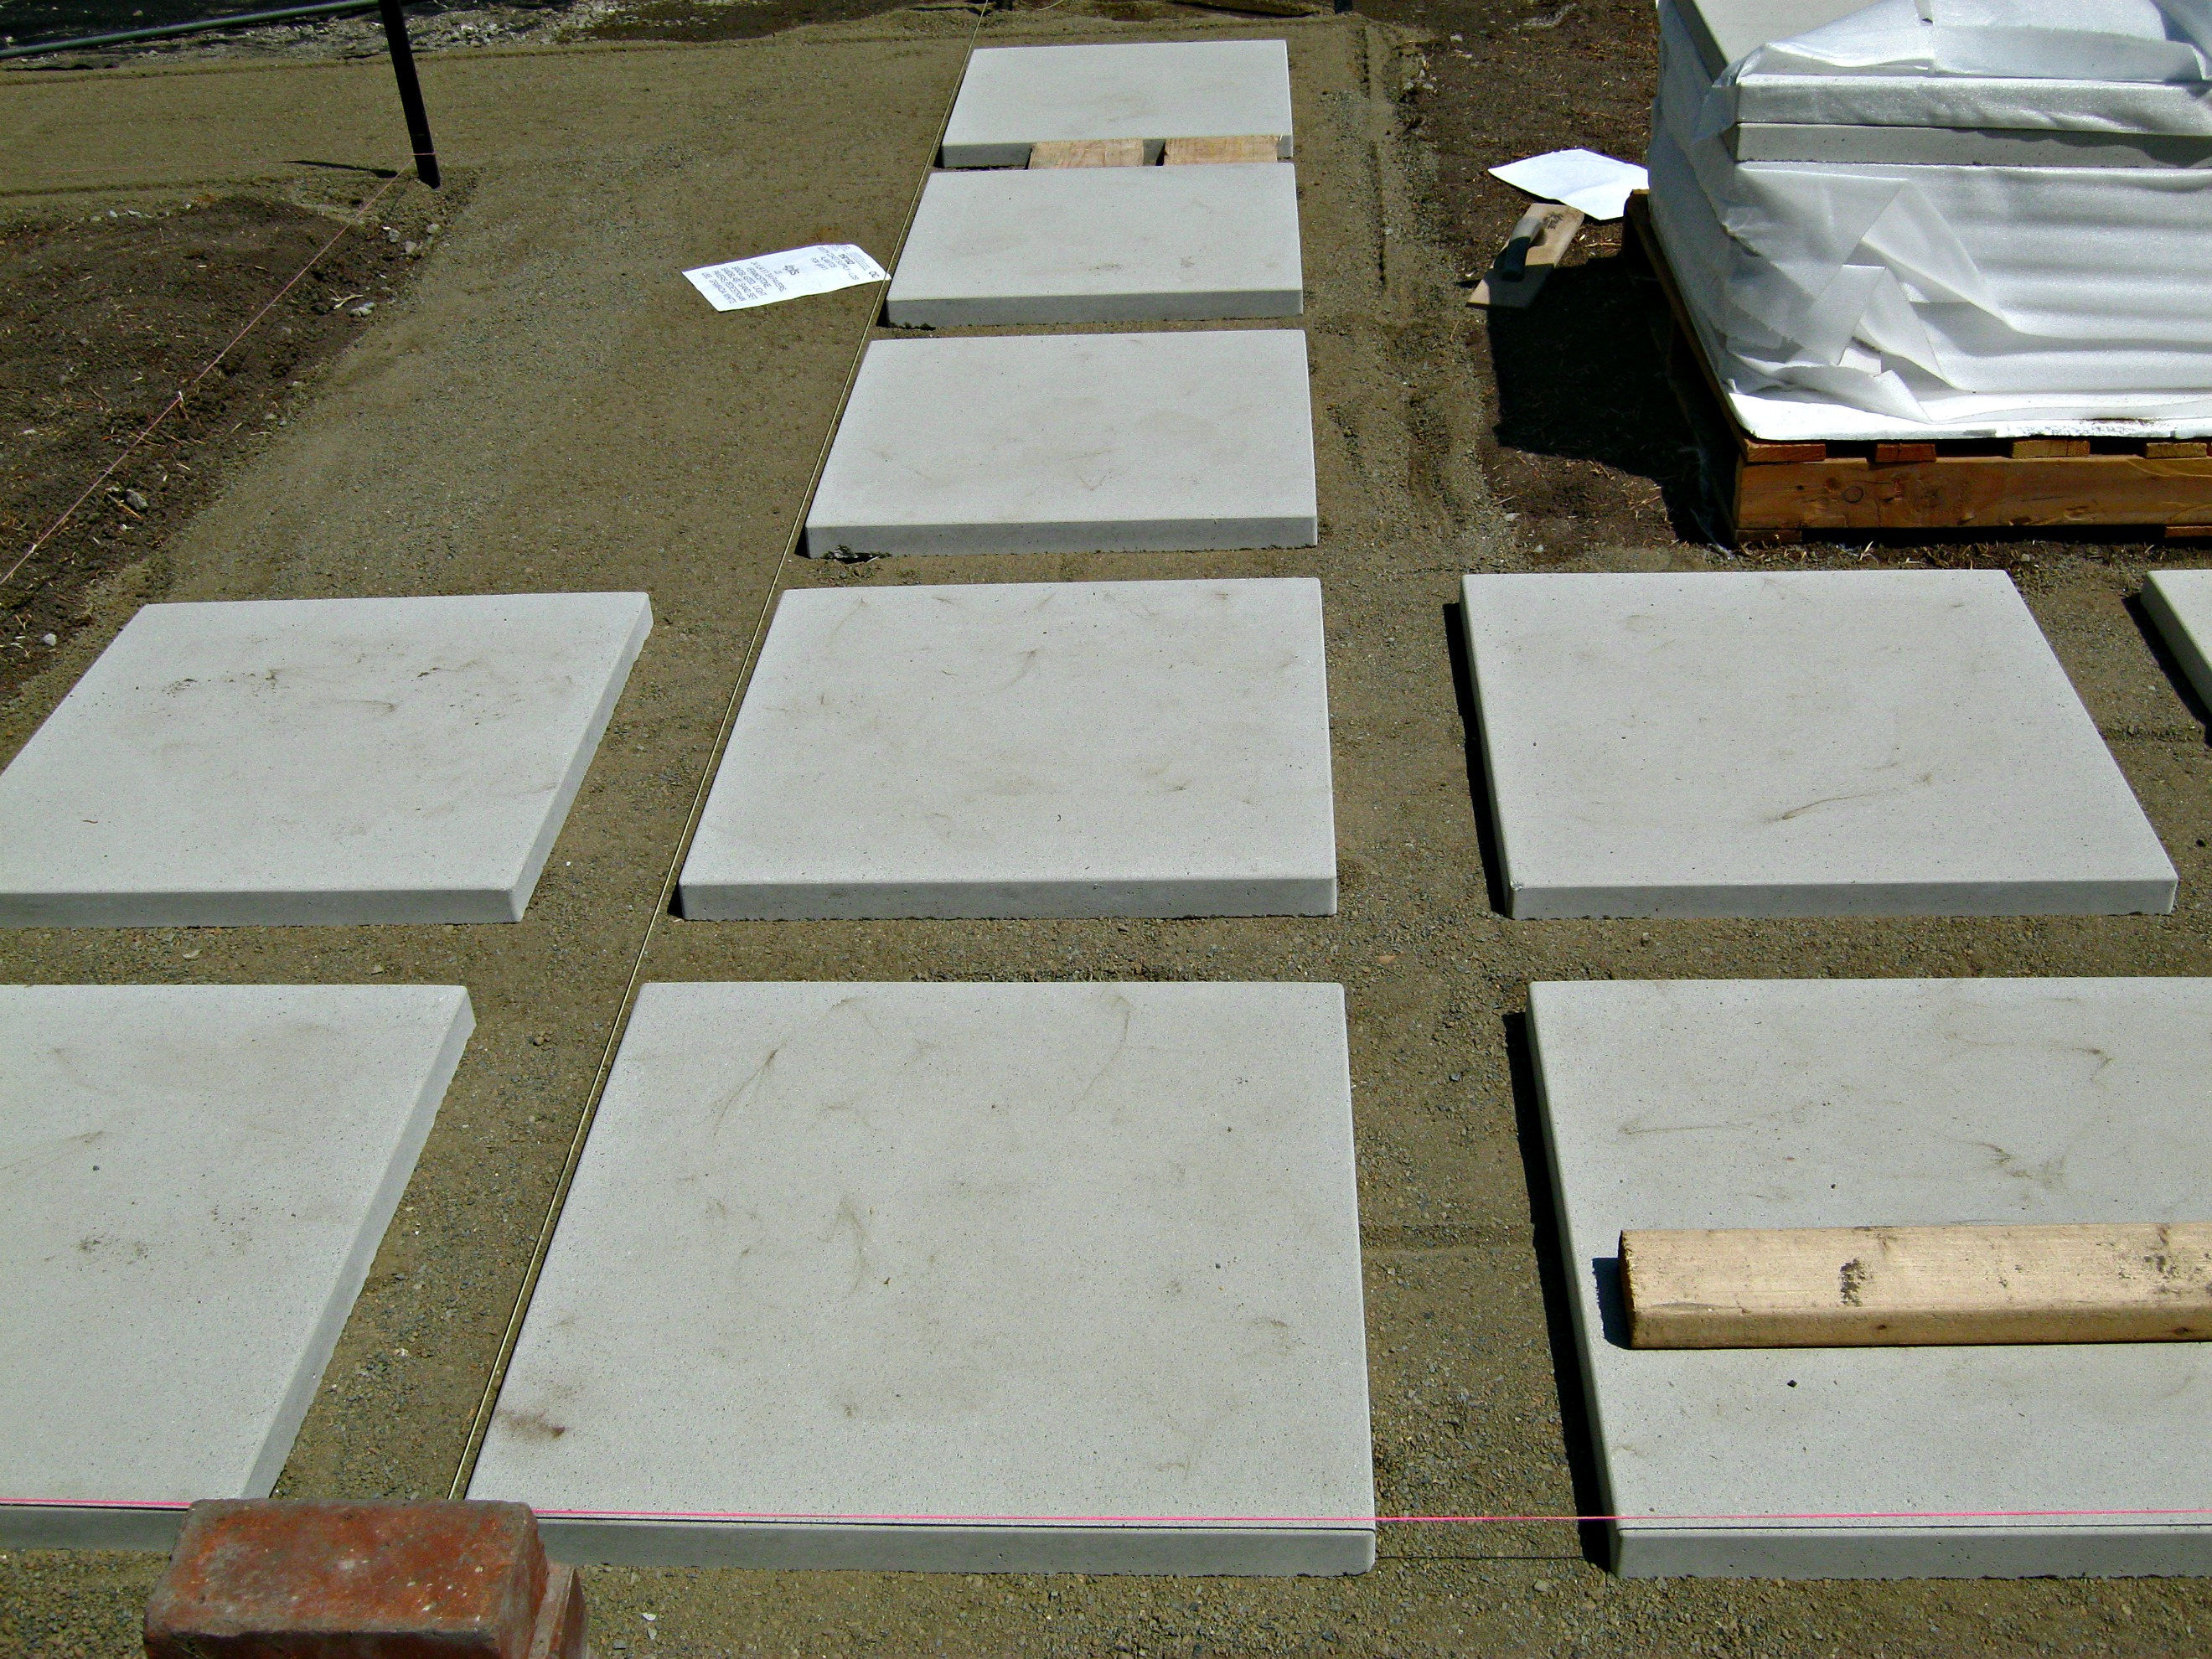 24x24 concrete patio pavers